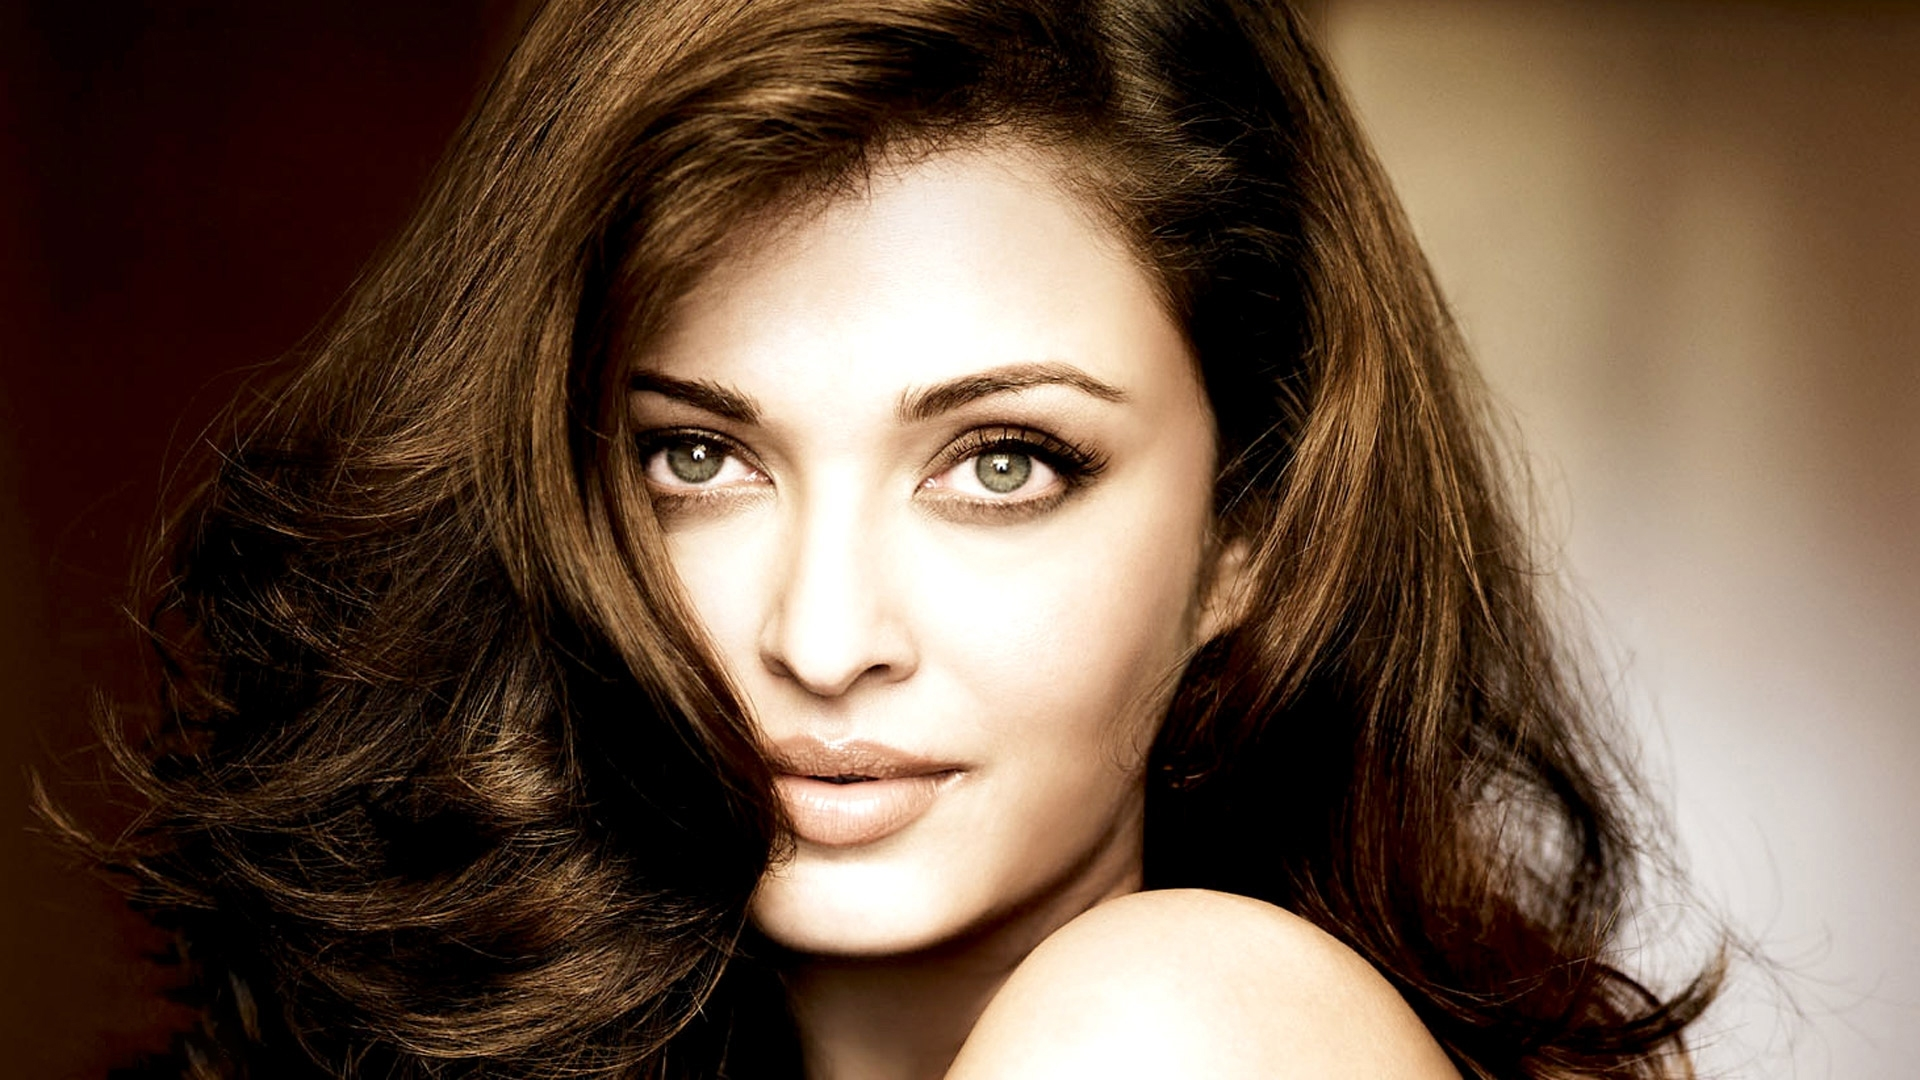 Types of beards photos Bollywood Actress Without Clothes HOT CELEBRITIES